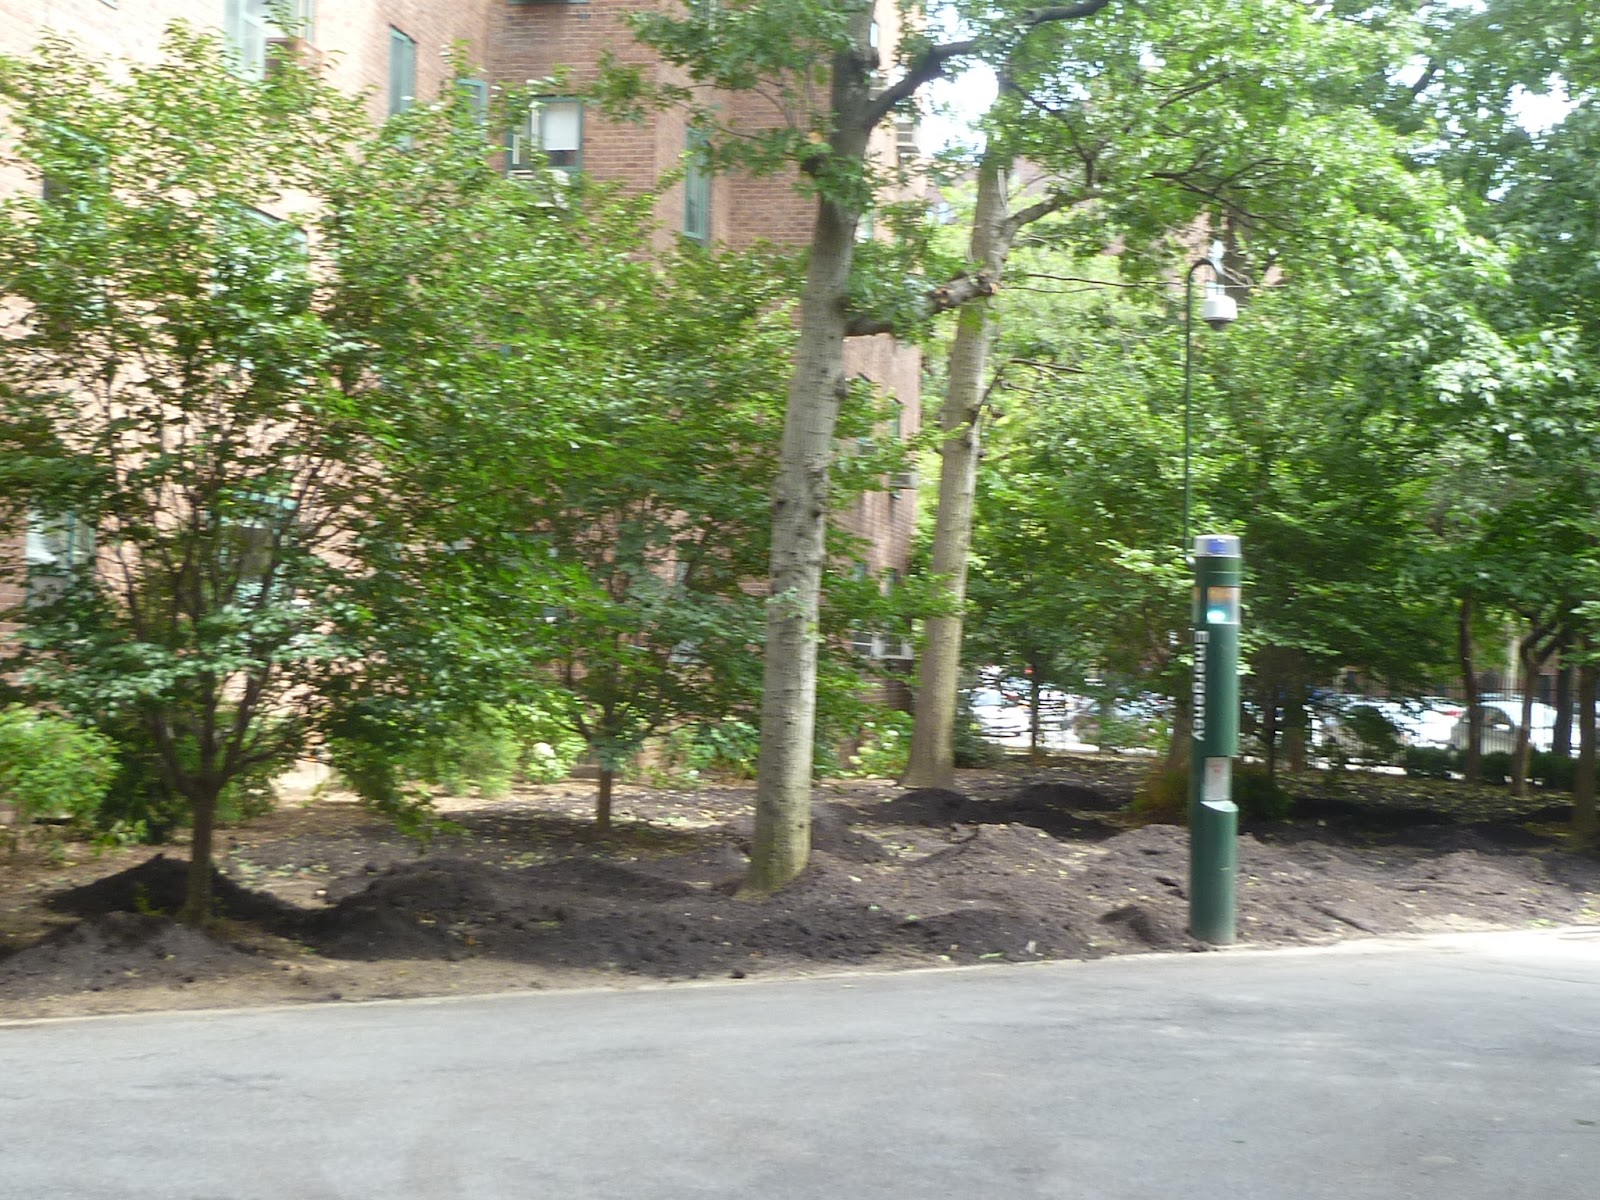 The new york squirrel dirty old stuyvesant town peter for Cooper village